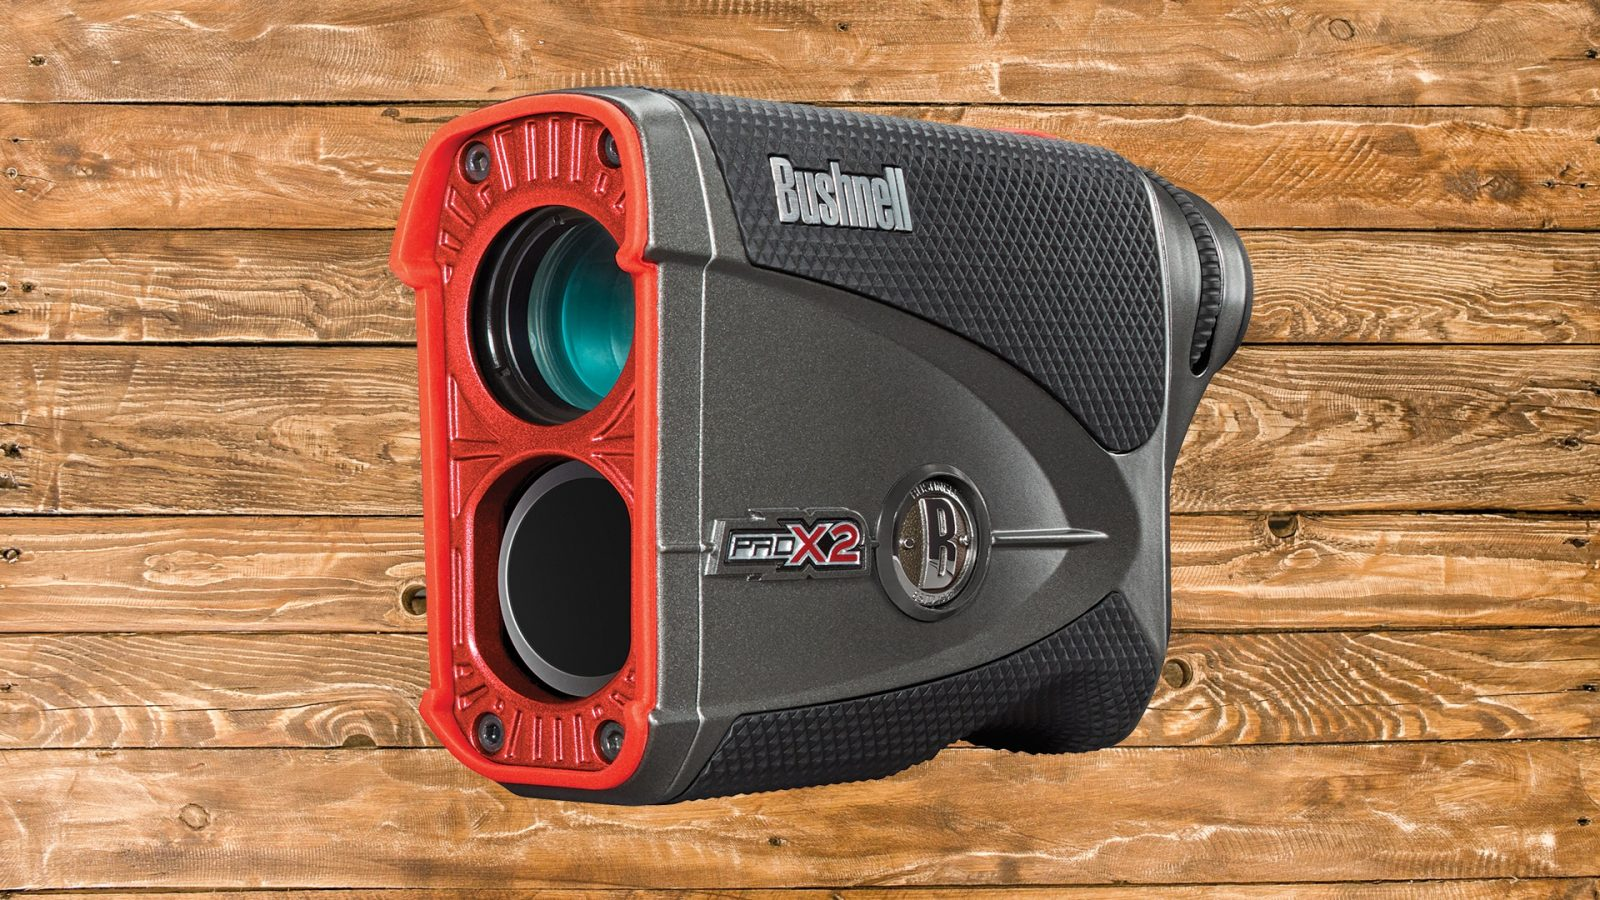 Bushnell Pro X2 review: Frequently Asked Questions